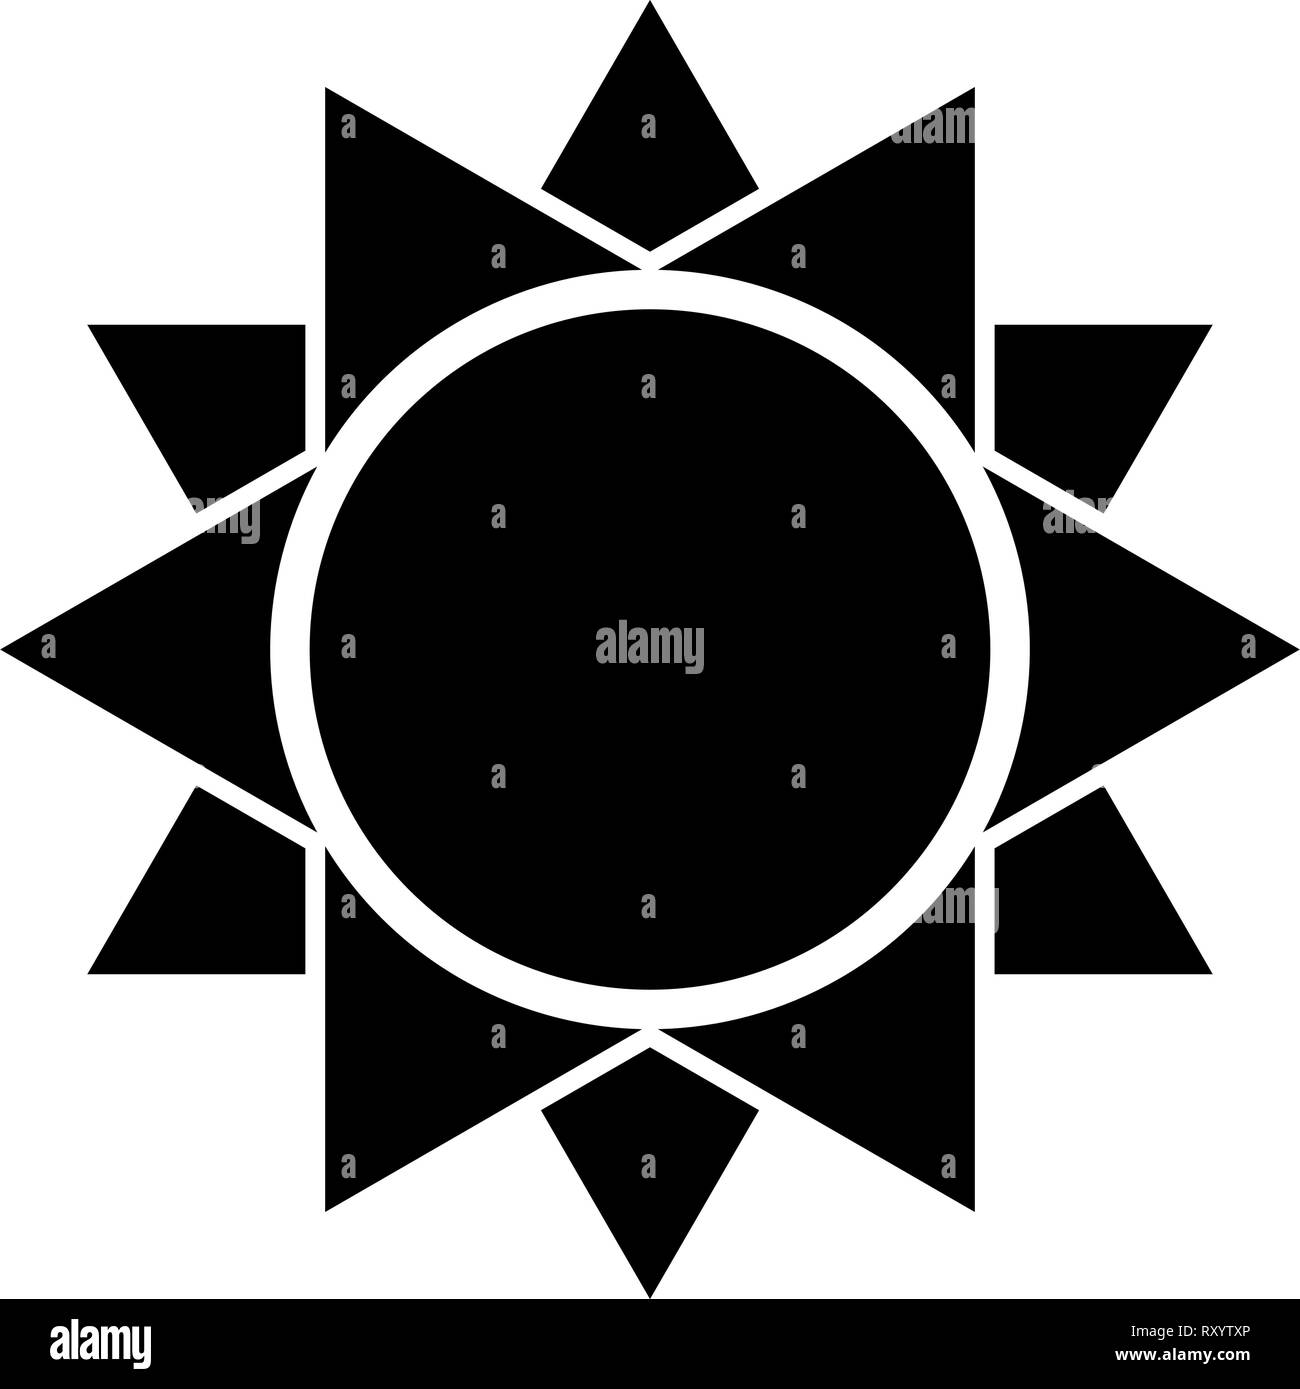 Sun icon black color vector illustration flat style simple image - Stock Vector